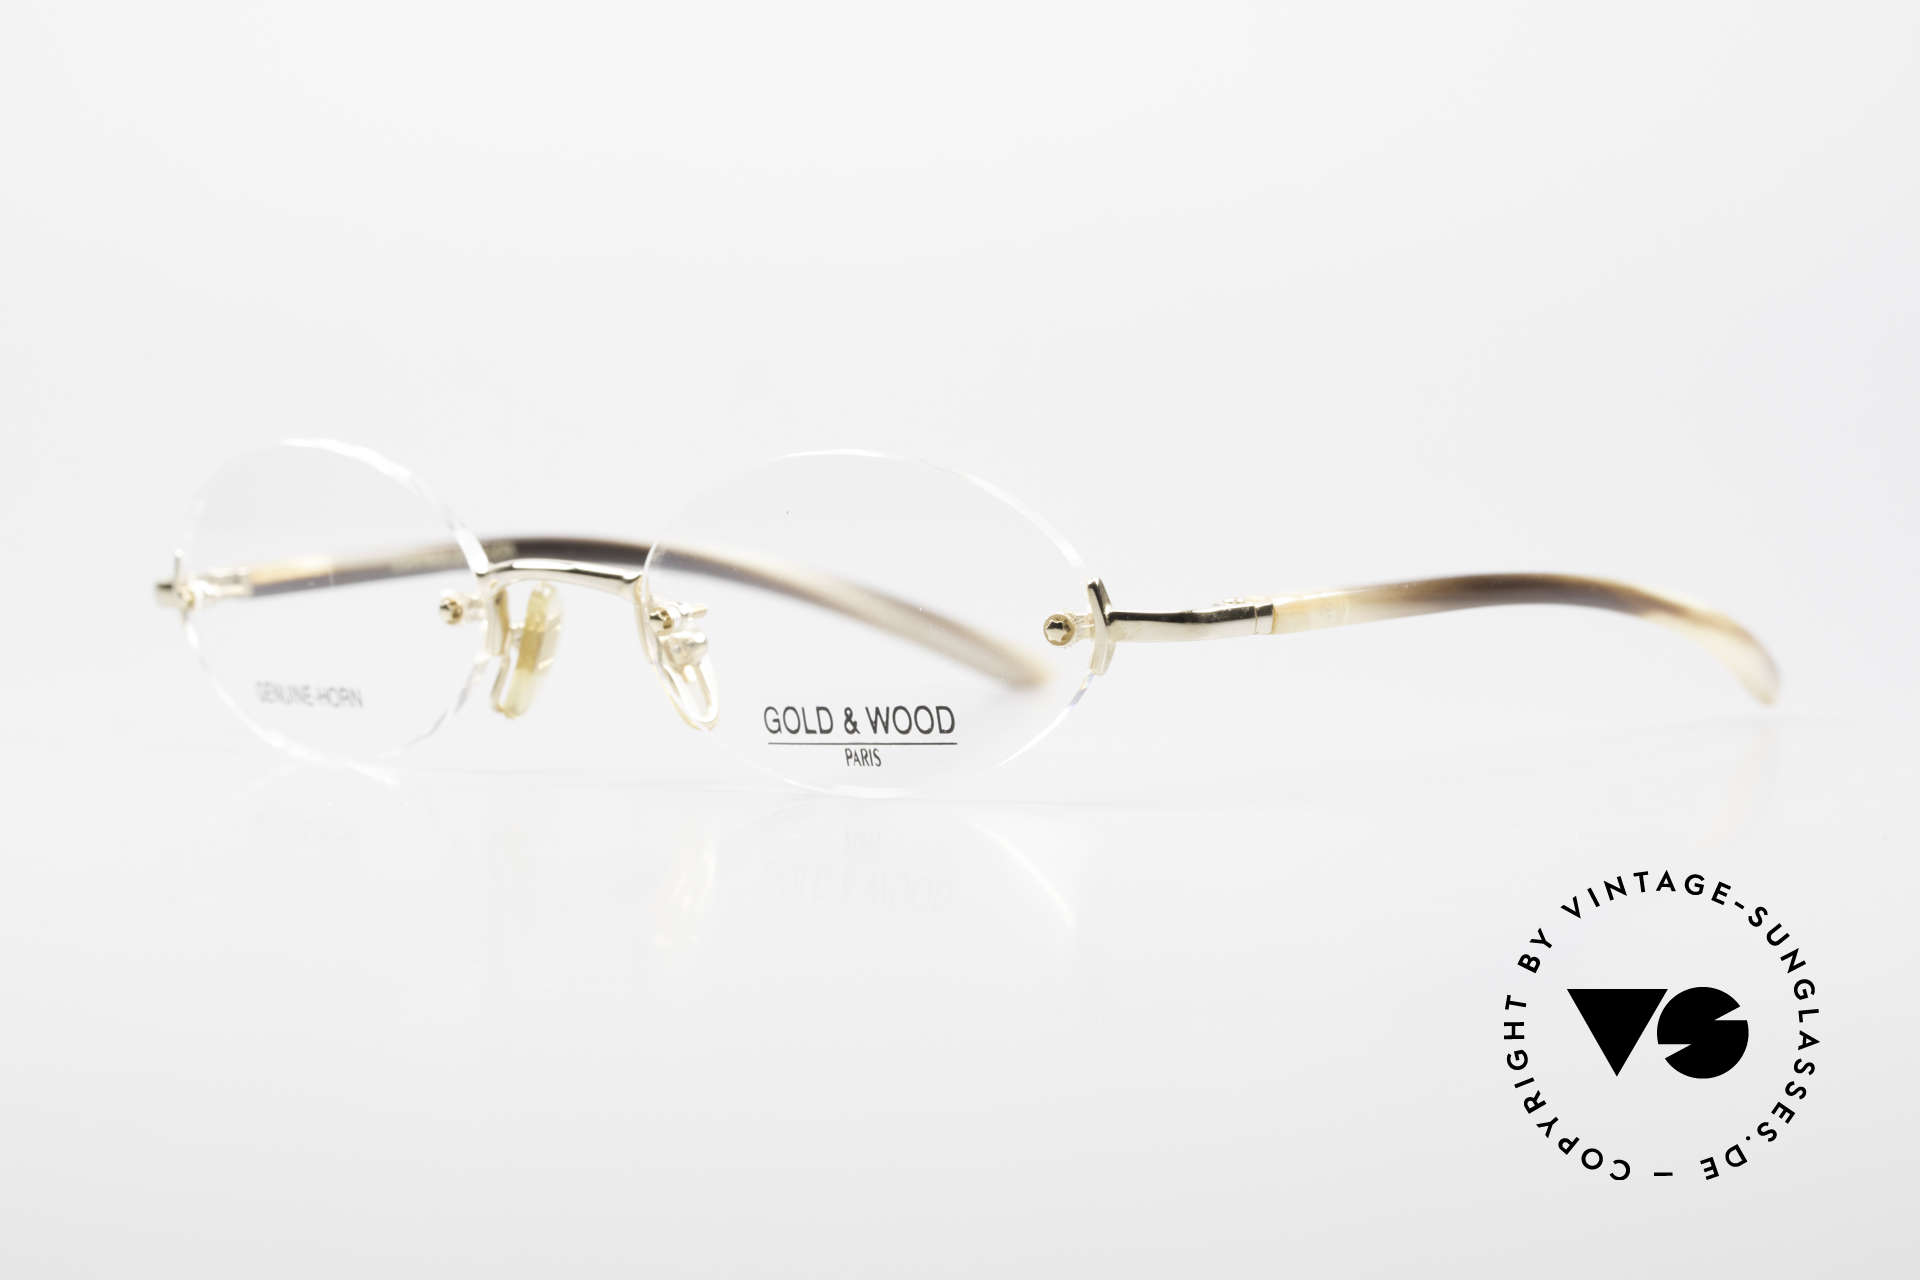 Gold & Wood 331 Rimless Genuine Horn Glasses, classic unisex model with flexible spring hinges, Made for Men and Women